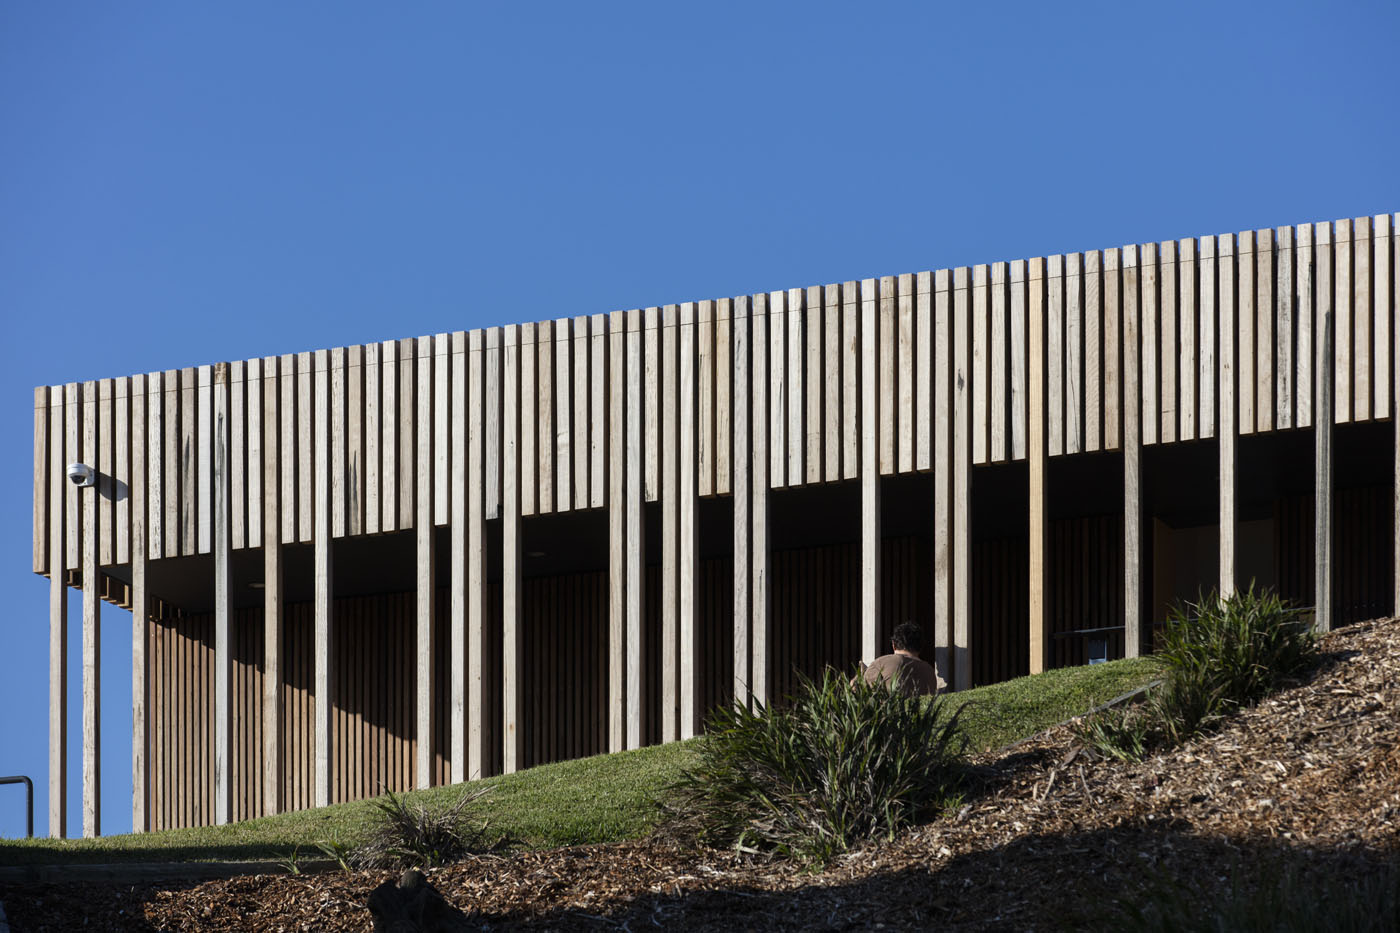 Marks Park Amenities by Sam Crawford Architects, striking contrast of recycled timber agianst dark shadows